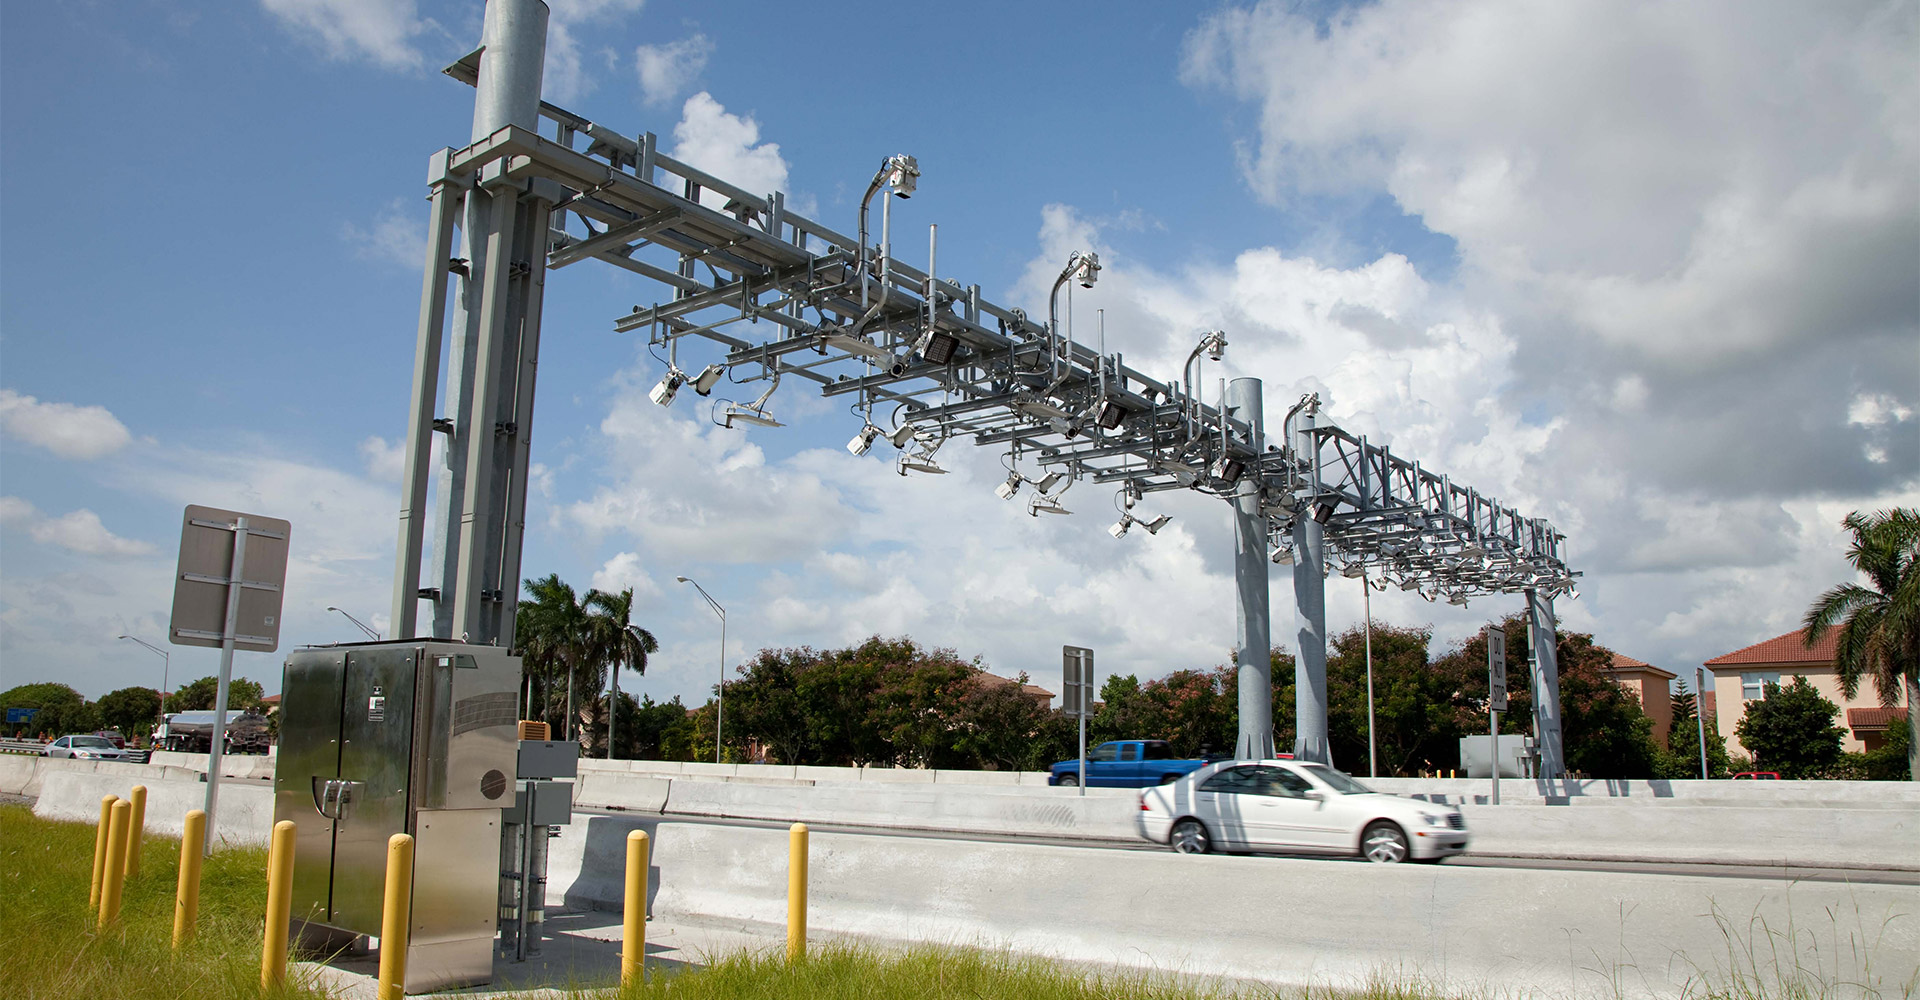 Vehicles driving under electronic tolling facility.